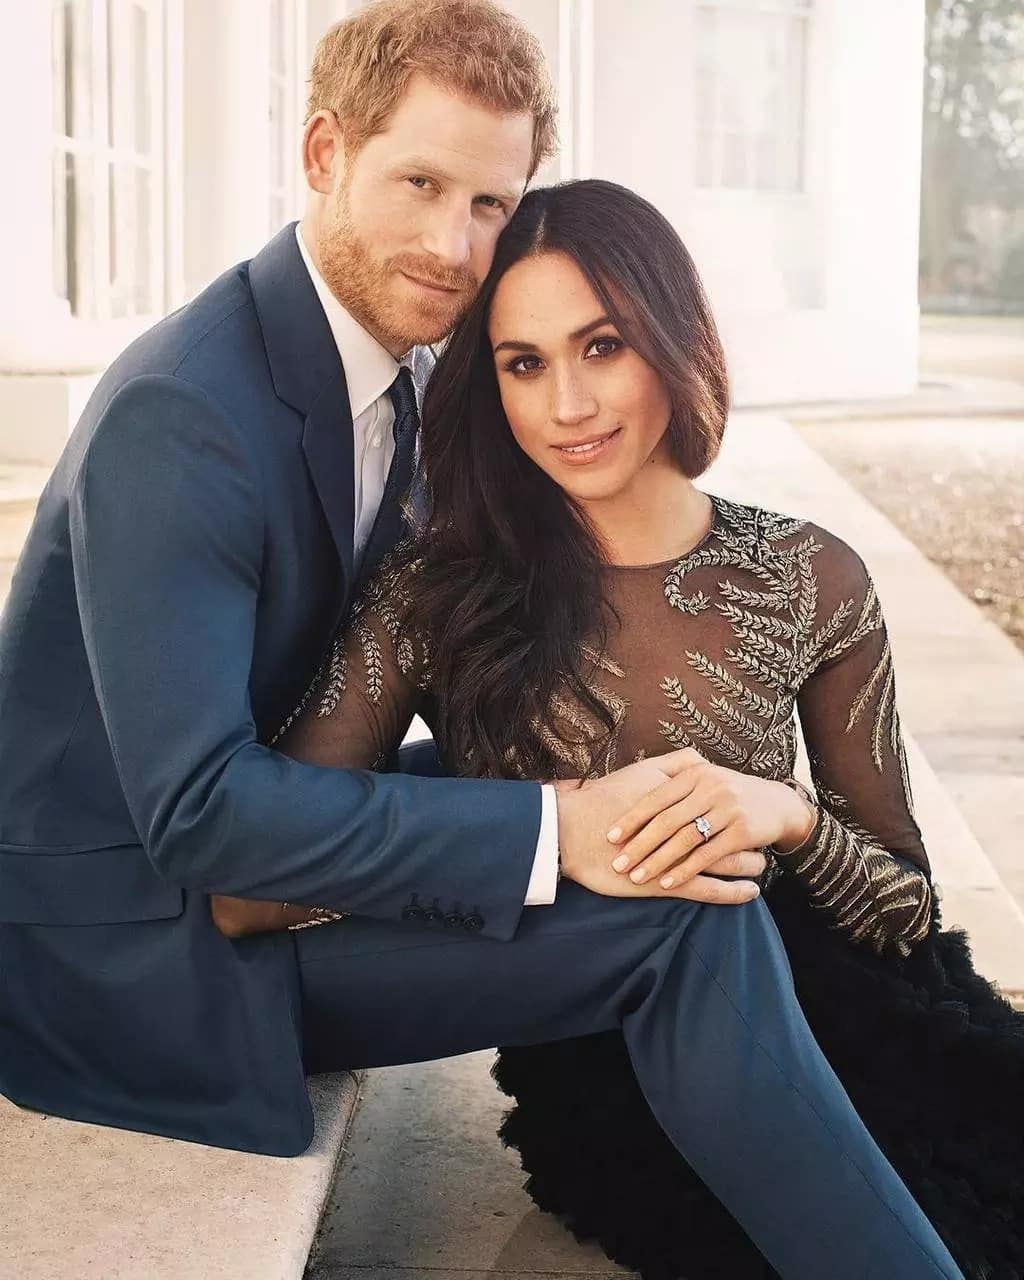 Prince Harry and Meghan engaged